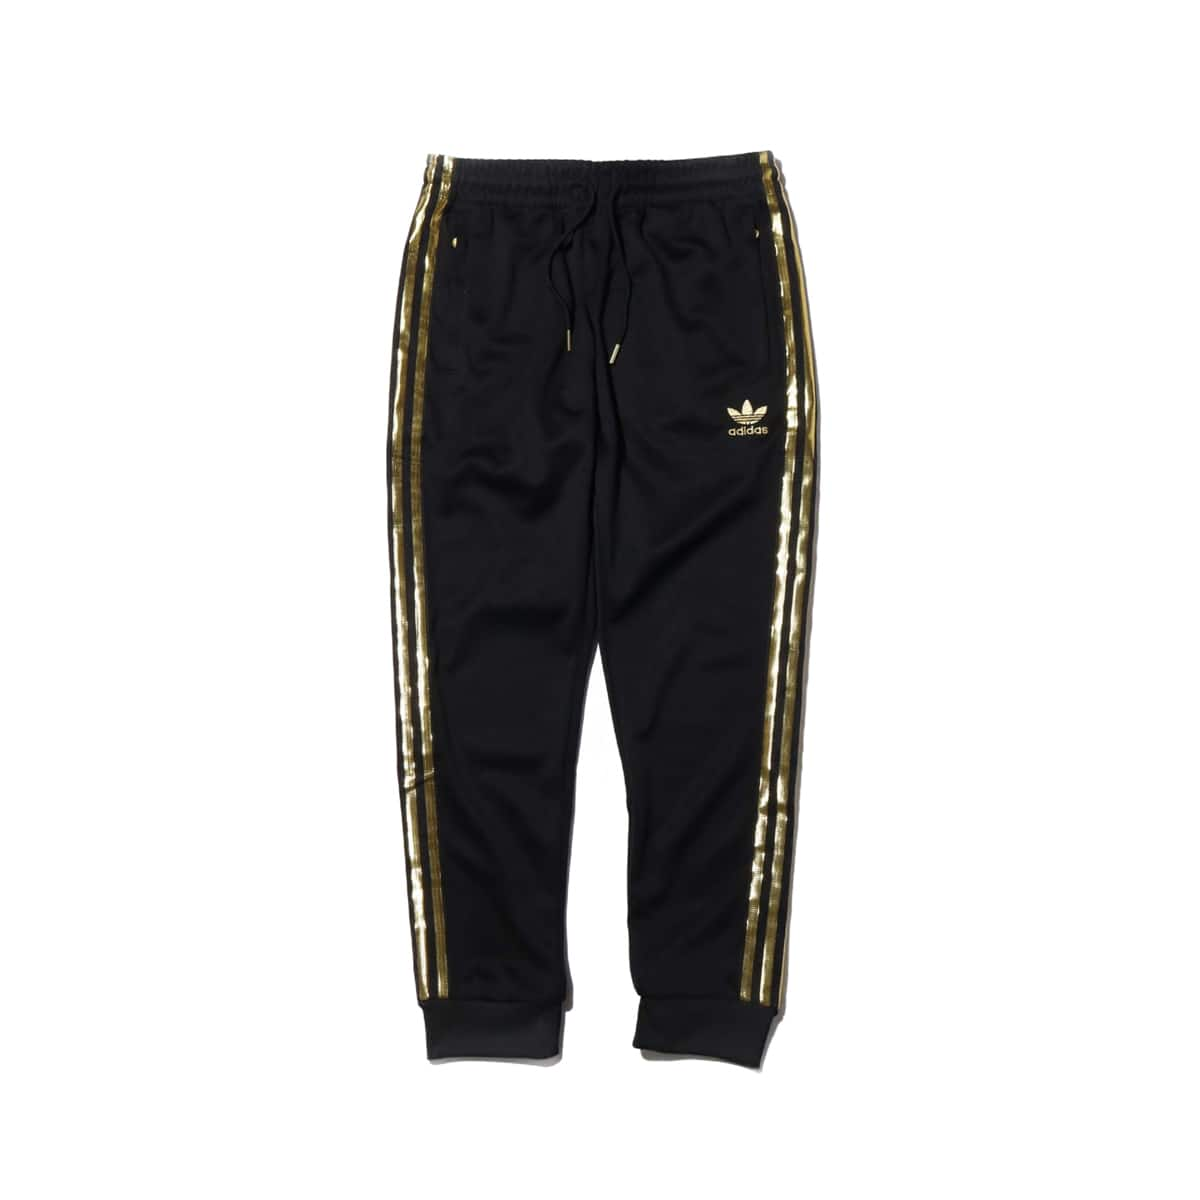 adidas SST 24 TRACK PANTS BLACK/GOLD METRIC 20SS-I_photo_large